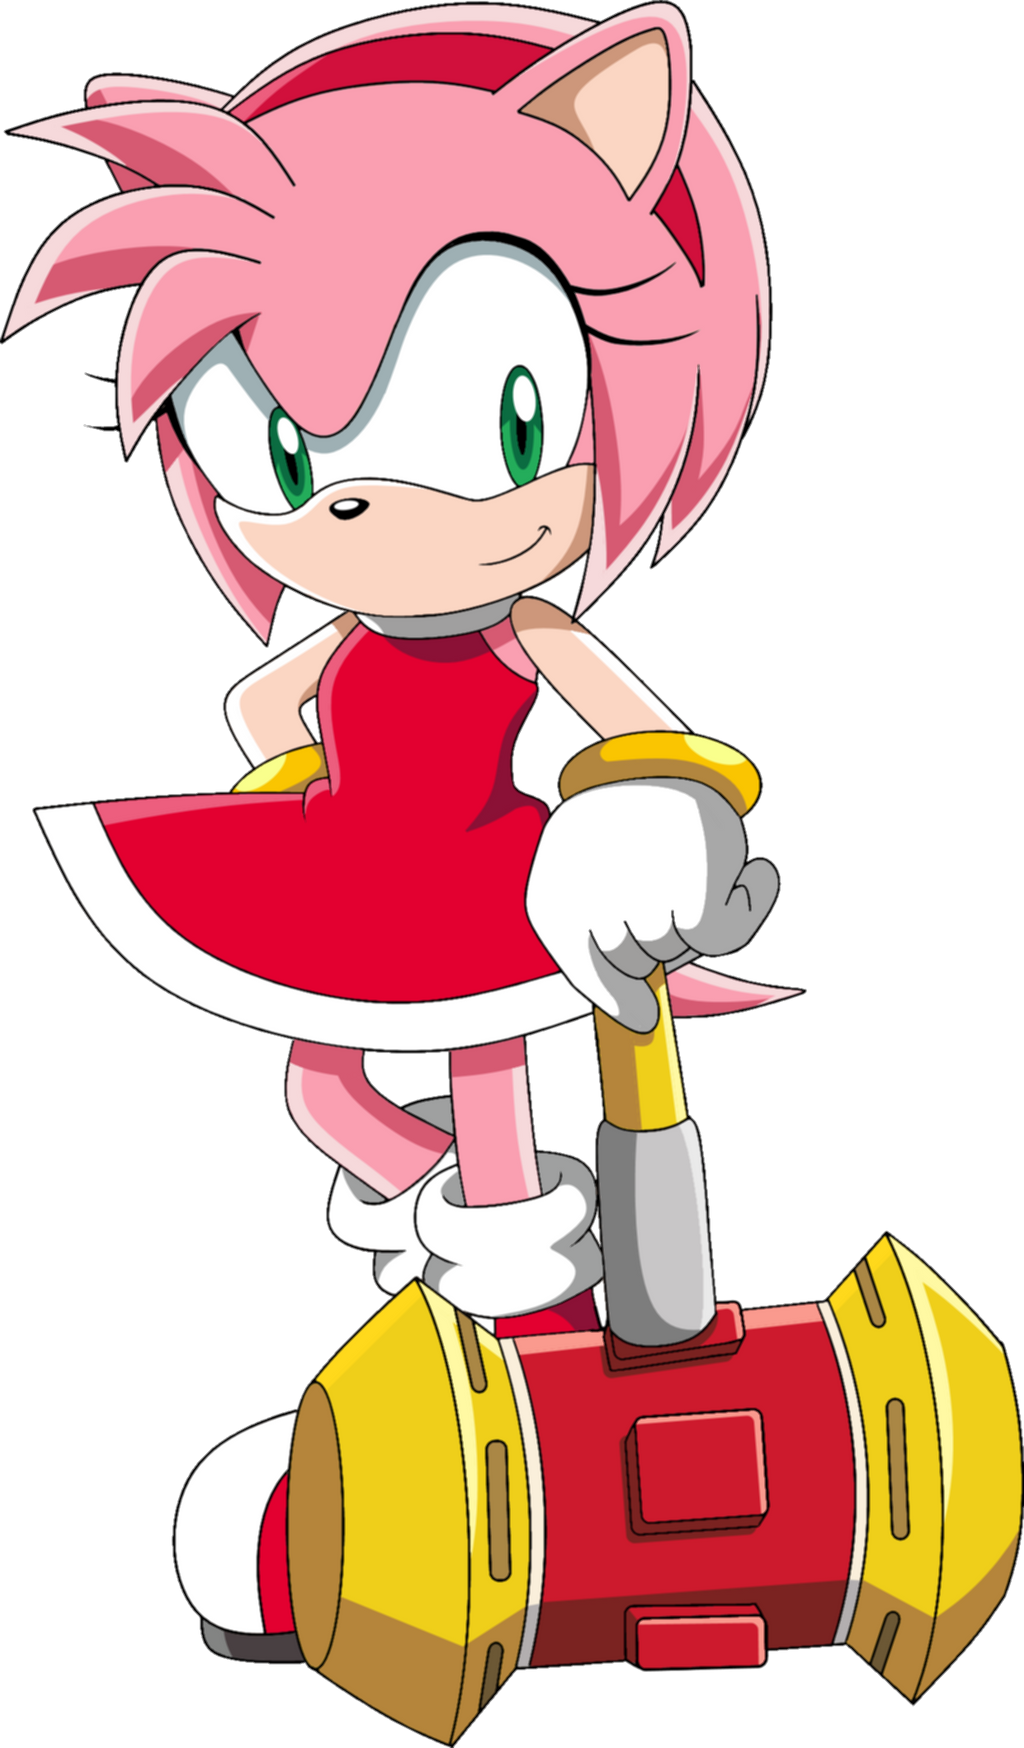 Sonic the hedgehog and amy rose